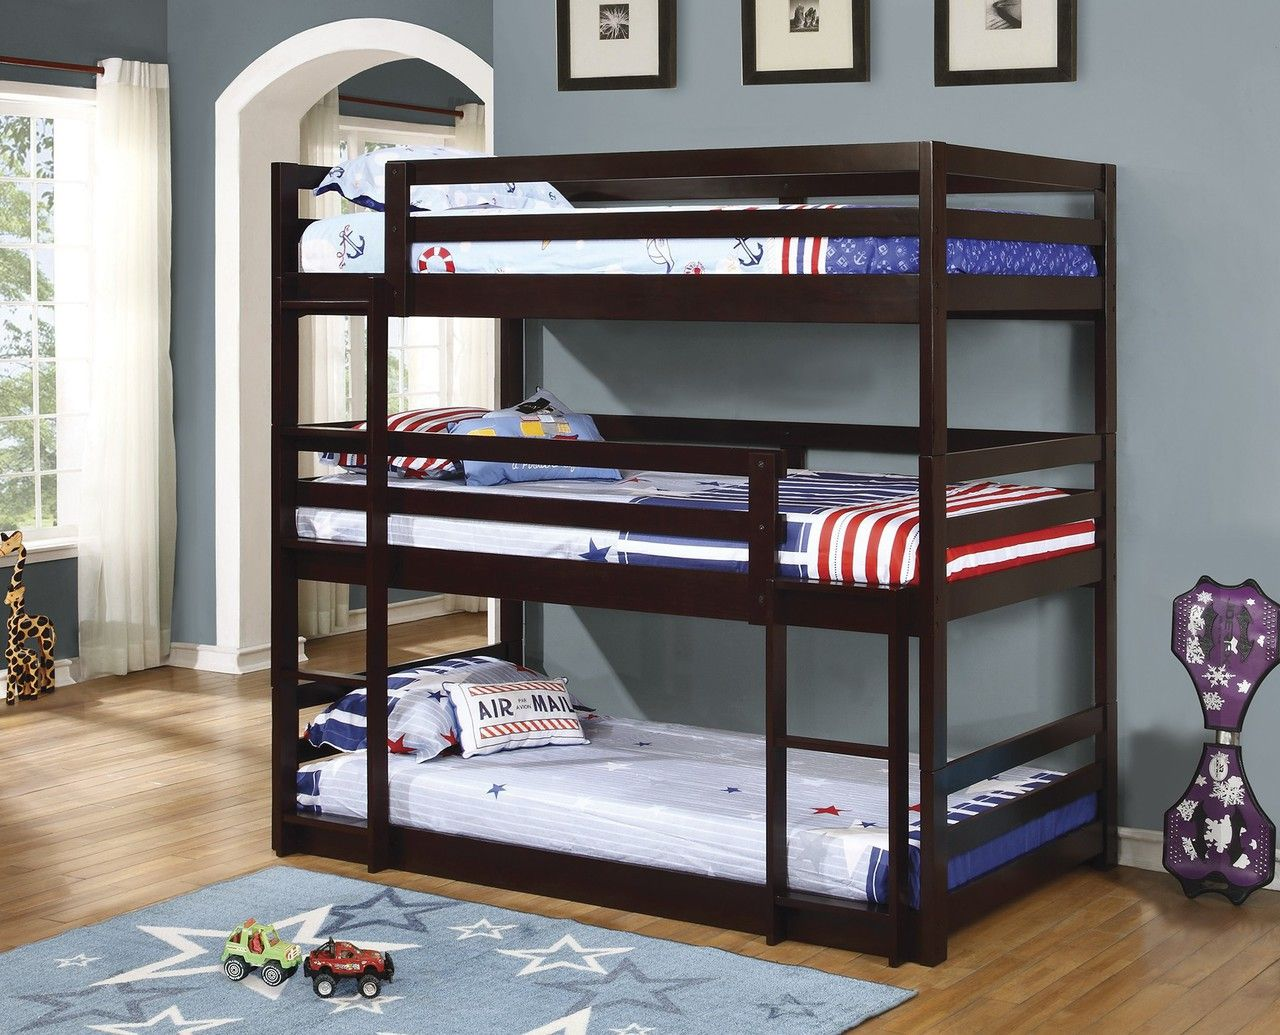 Attractive Coaster Triple Layer Twin Bunk Bed In Cappuccino. Find This Pin And More On  Bunk Beds By Efurniturehouse.